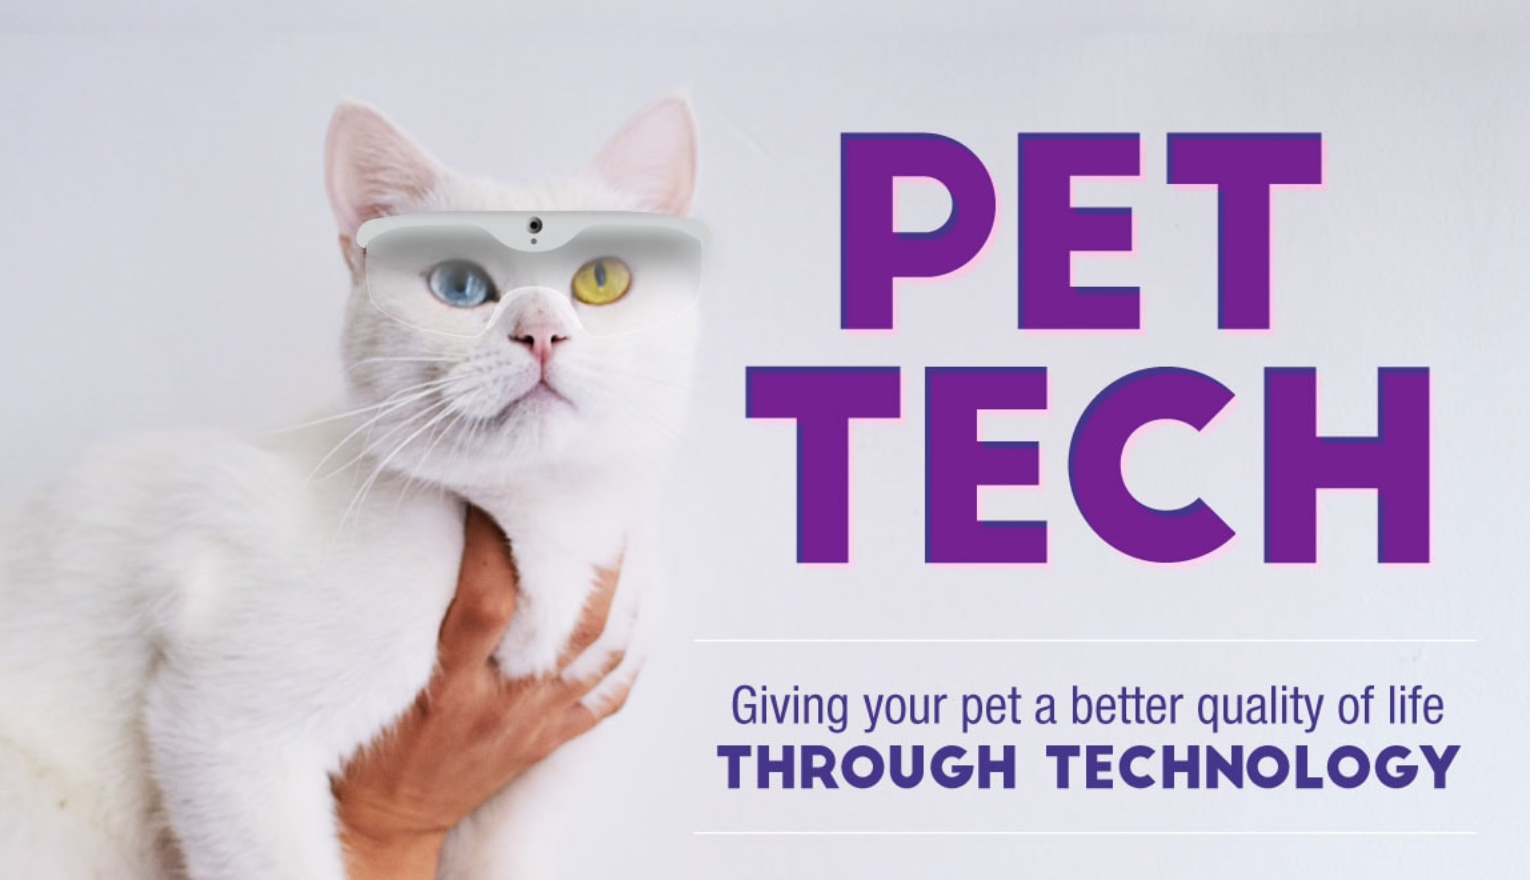 /how-tech-is-changing-the-game-for-the-pet-industry-43240b066de3 feature image